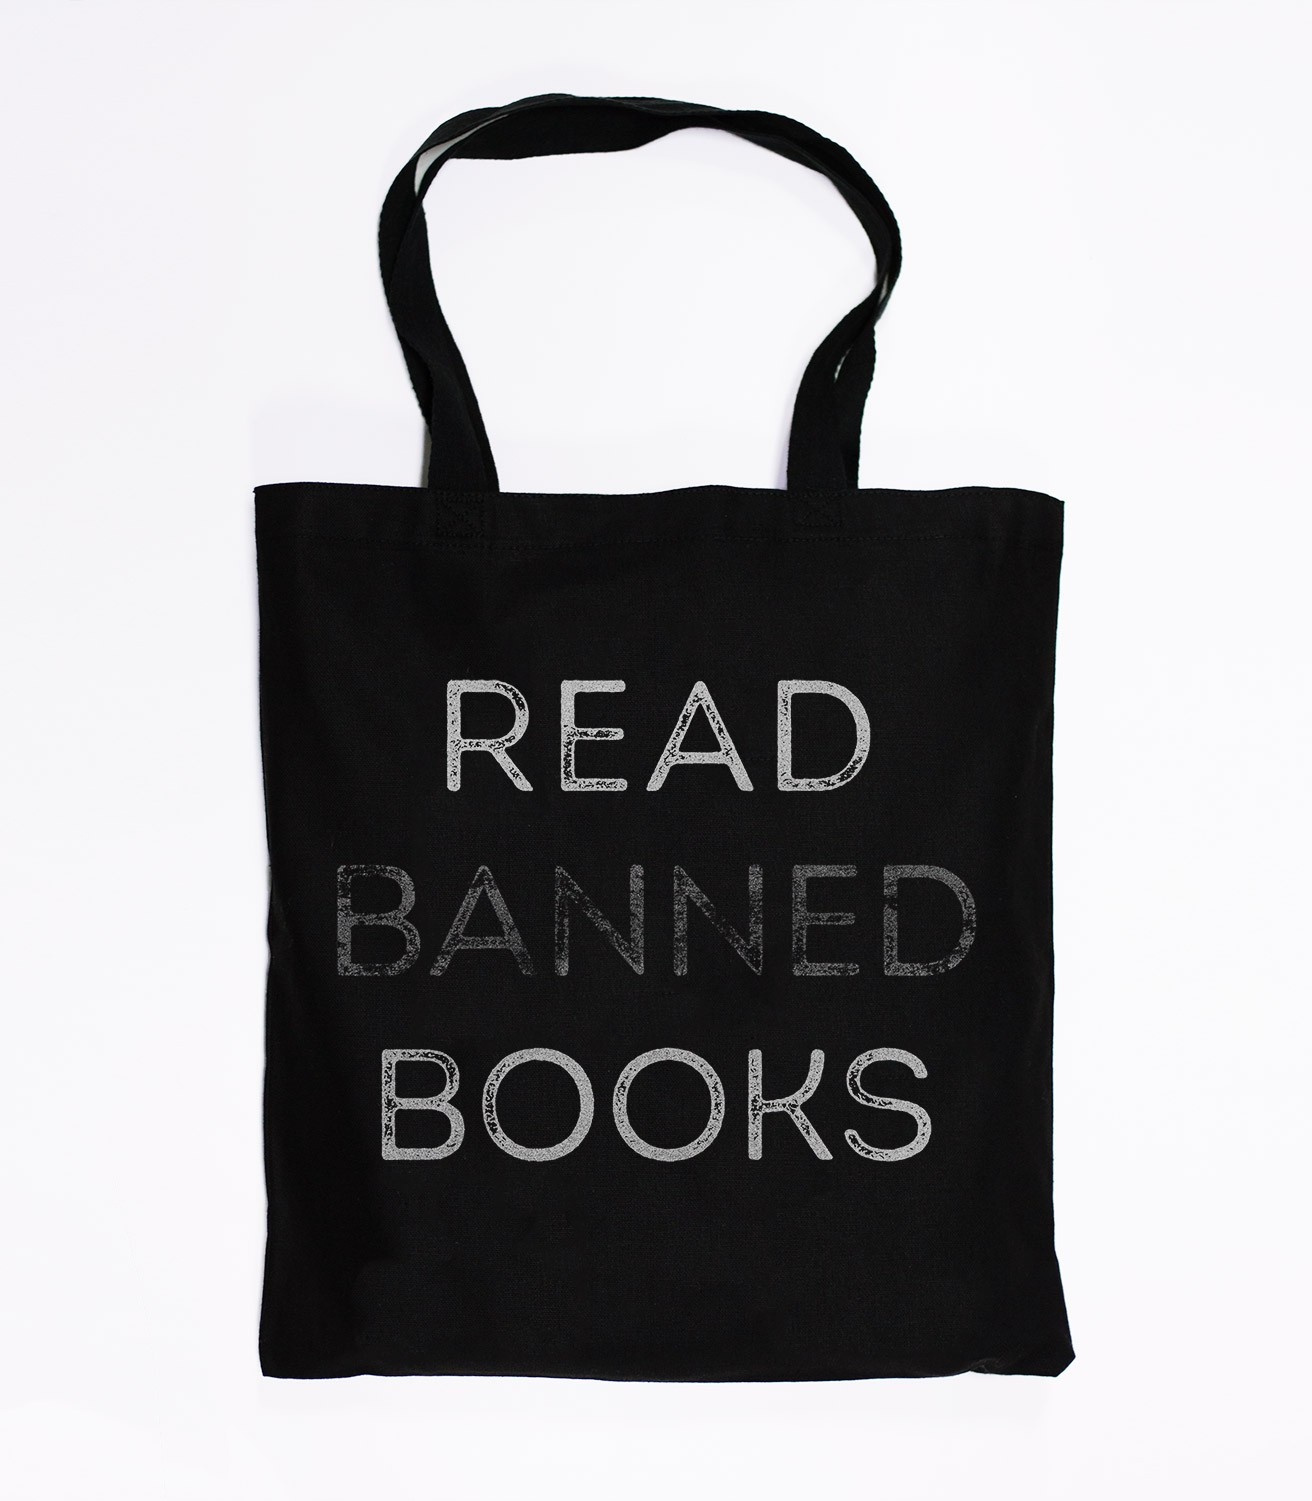 aaf857e02537 Read Banned Books Tote Bag